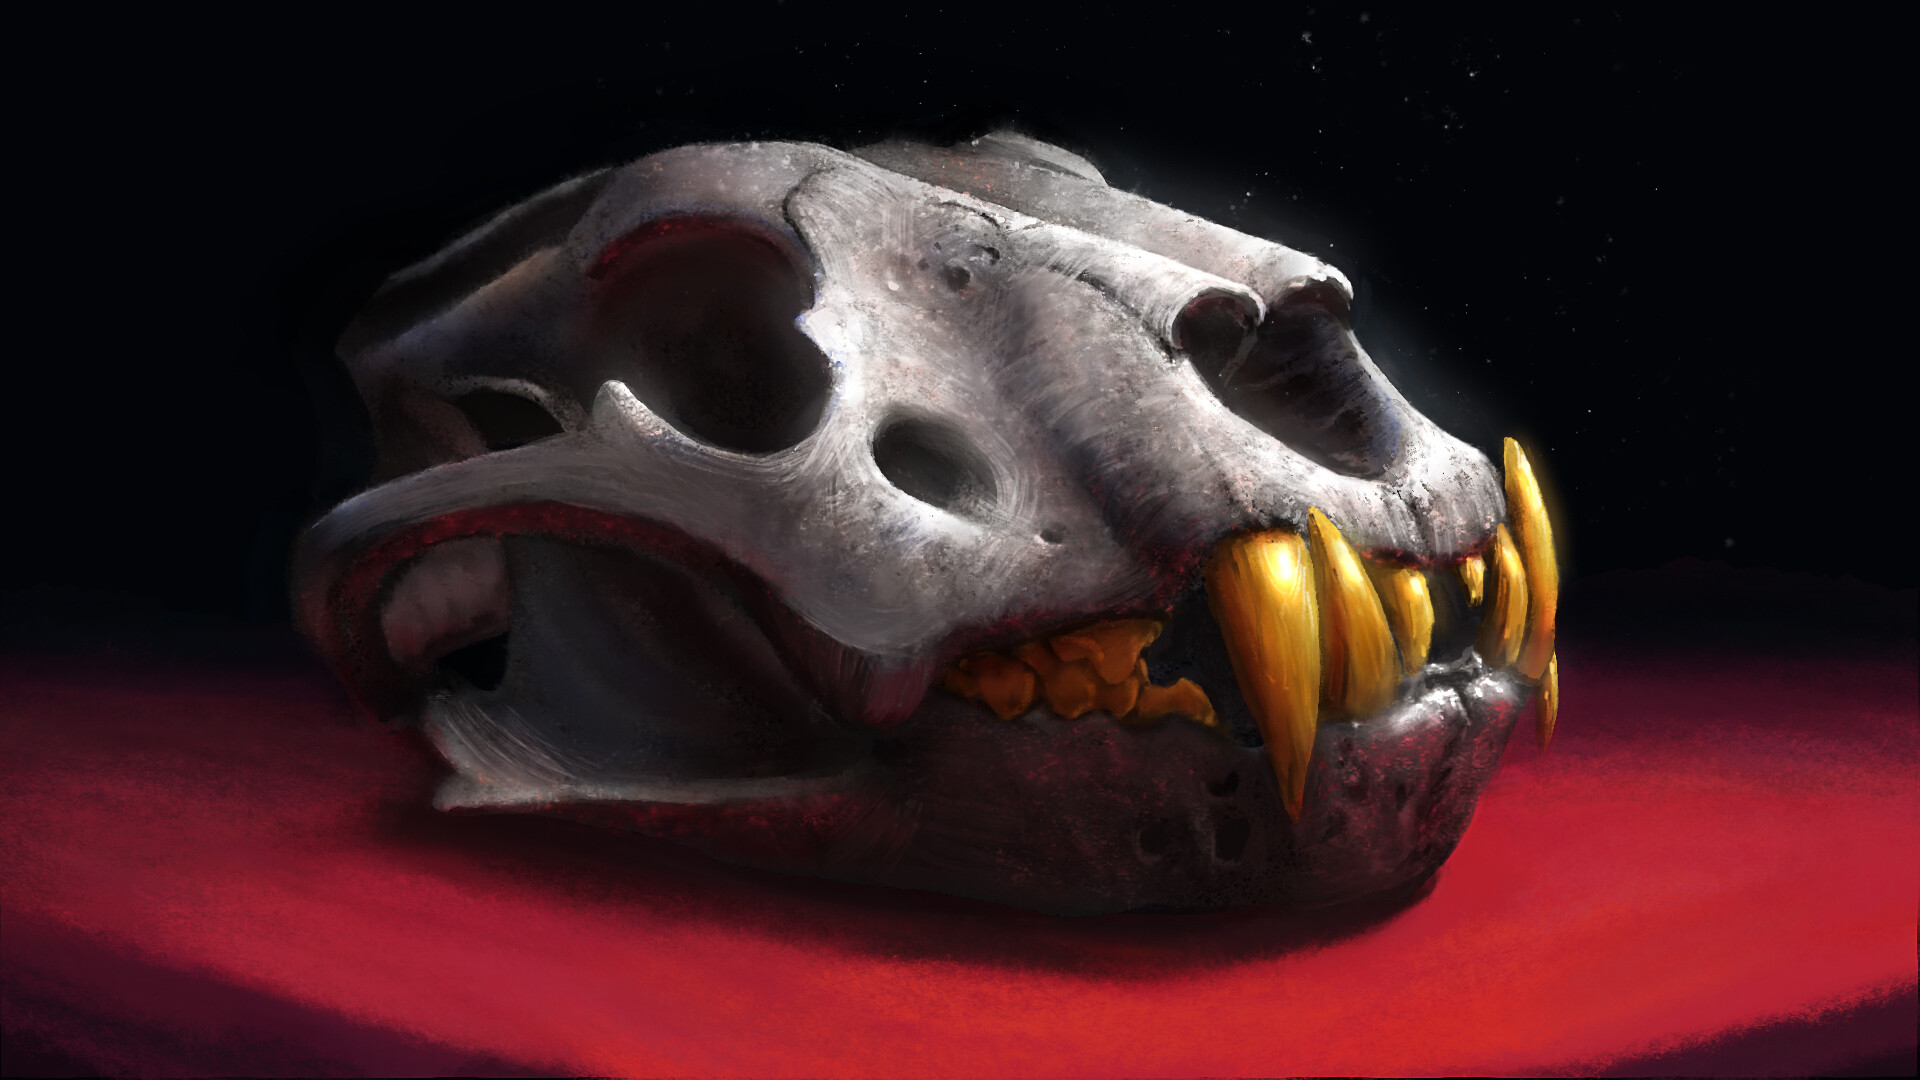 making a lion's skull look like it is made of iron and gold